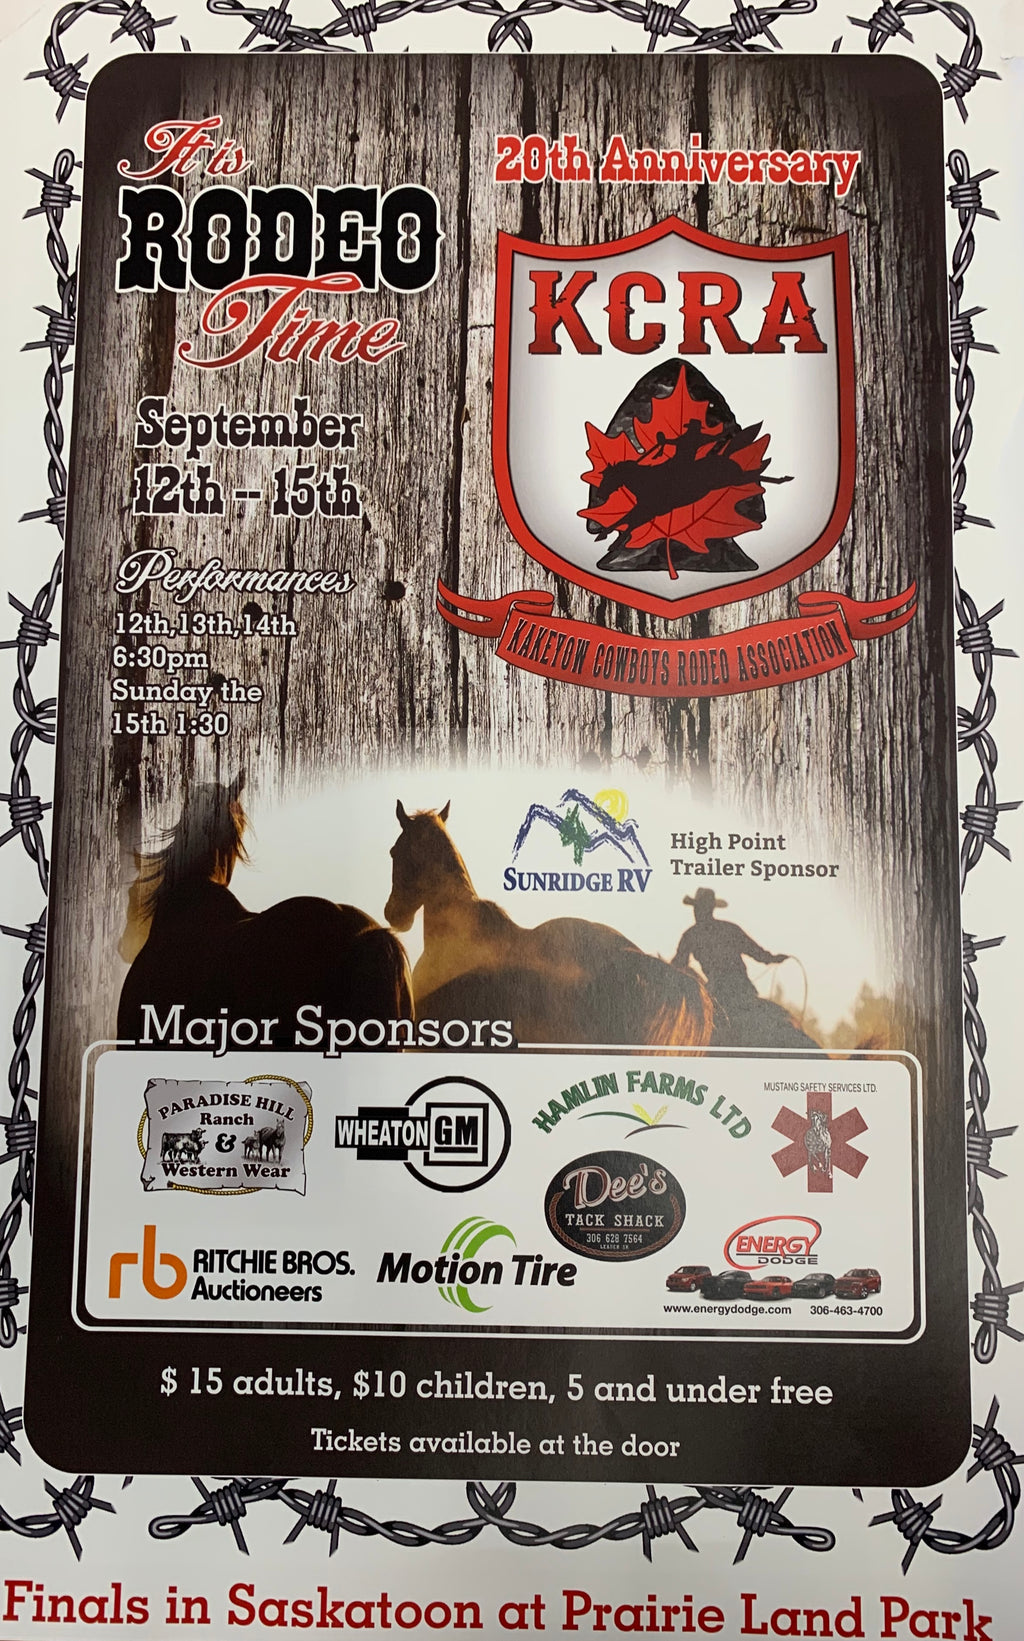 We Will be at the KCRA Finals this week!!